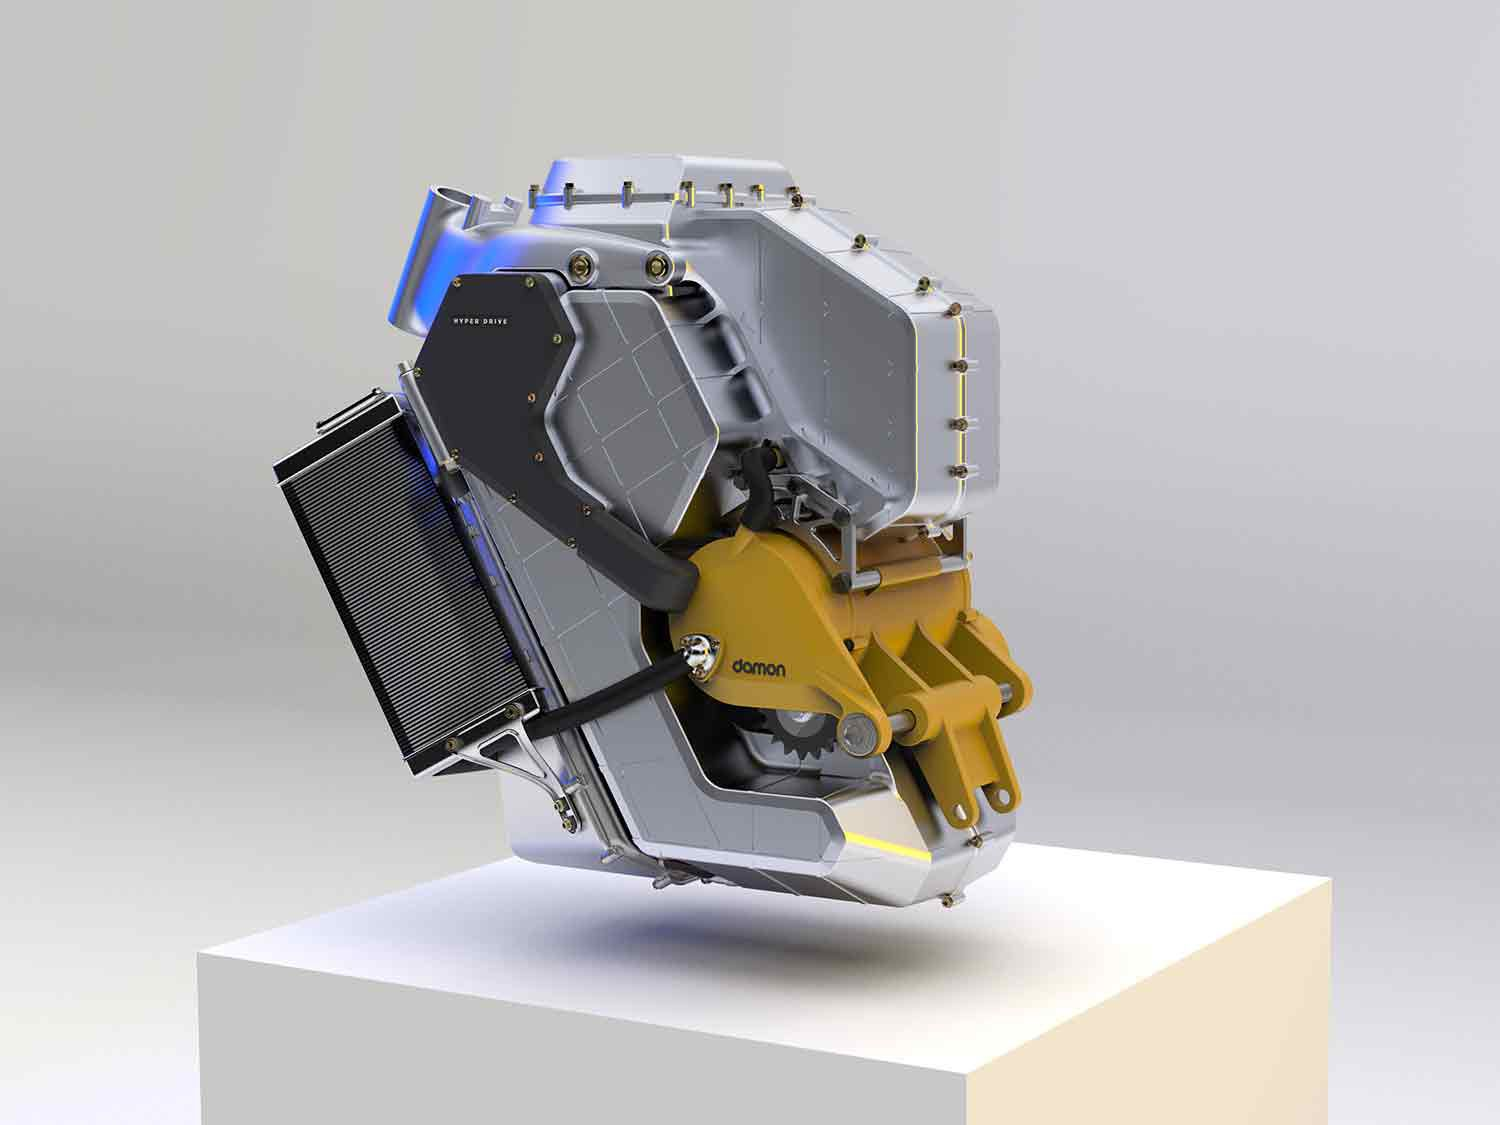 Taking the place of the traditional load-bearing frame, HyperDrive is Damon's new multi-platform, load-bearing powertrain.